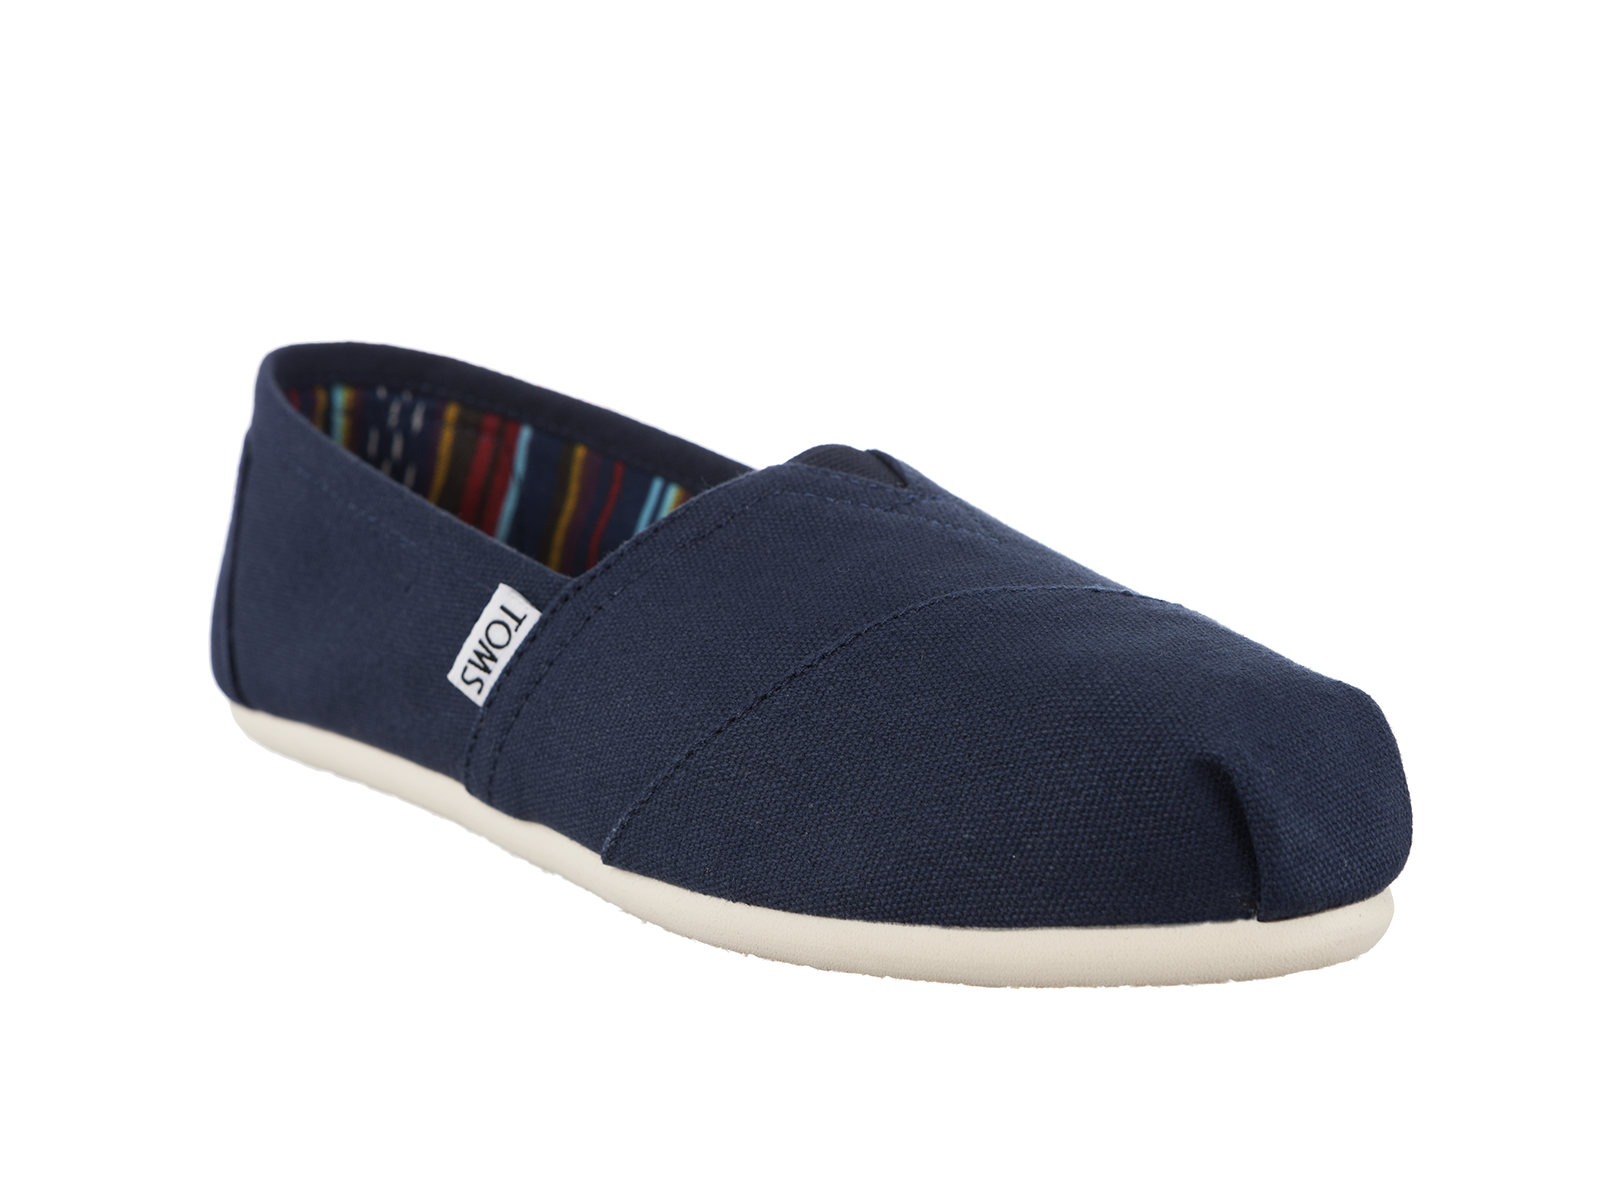 toms originals damen herren espadrilles ballerinas schuhe slipper ebay. Black Bedroom Furniture Sets. Home Design Ideas